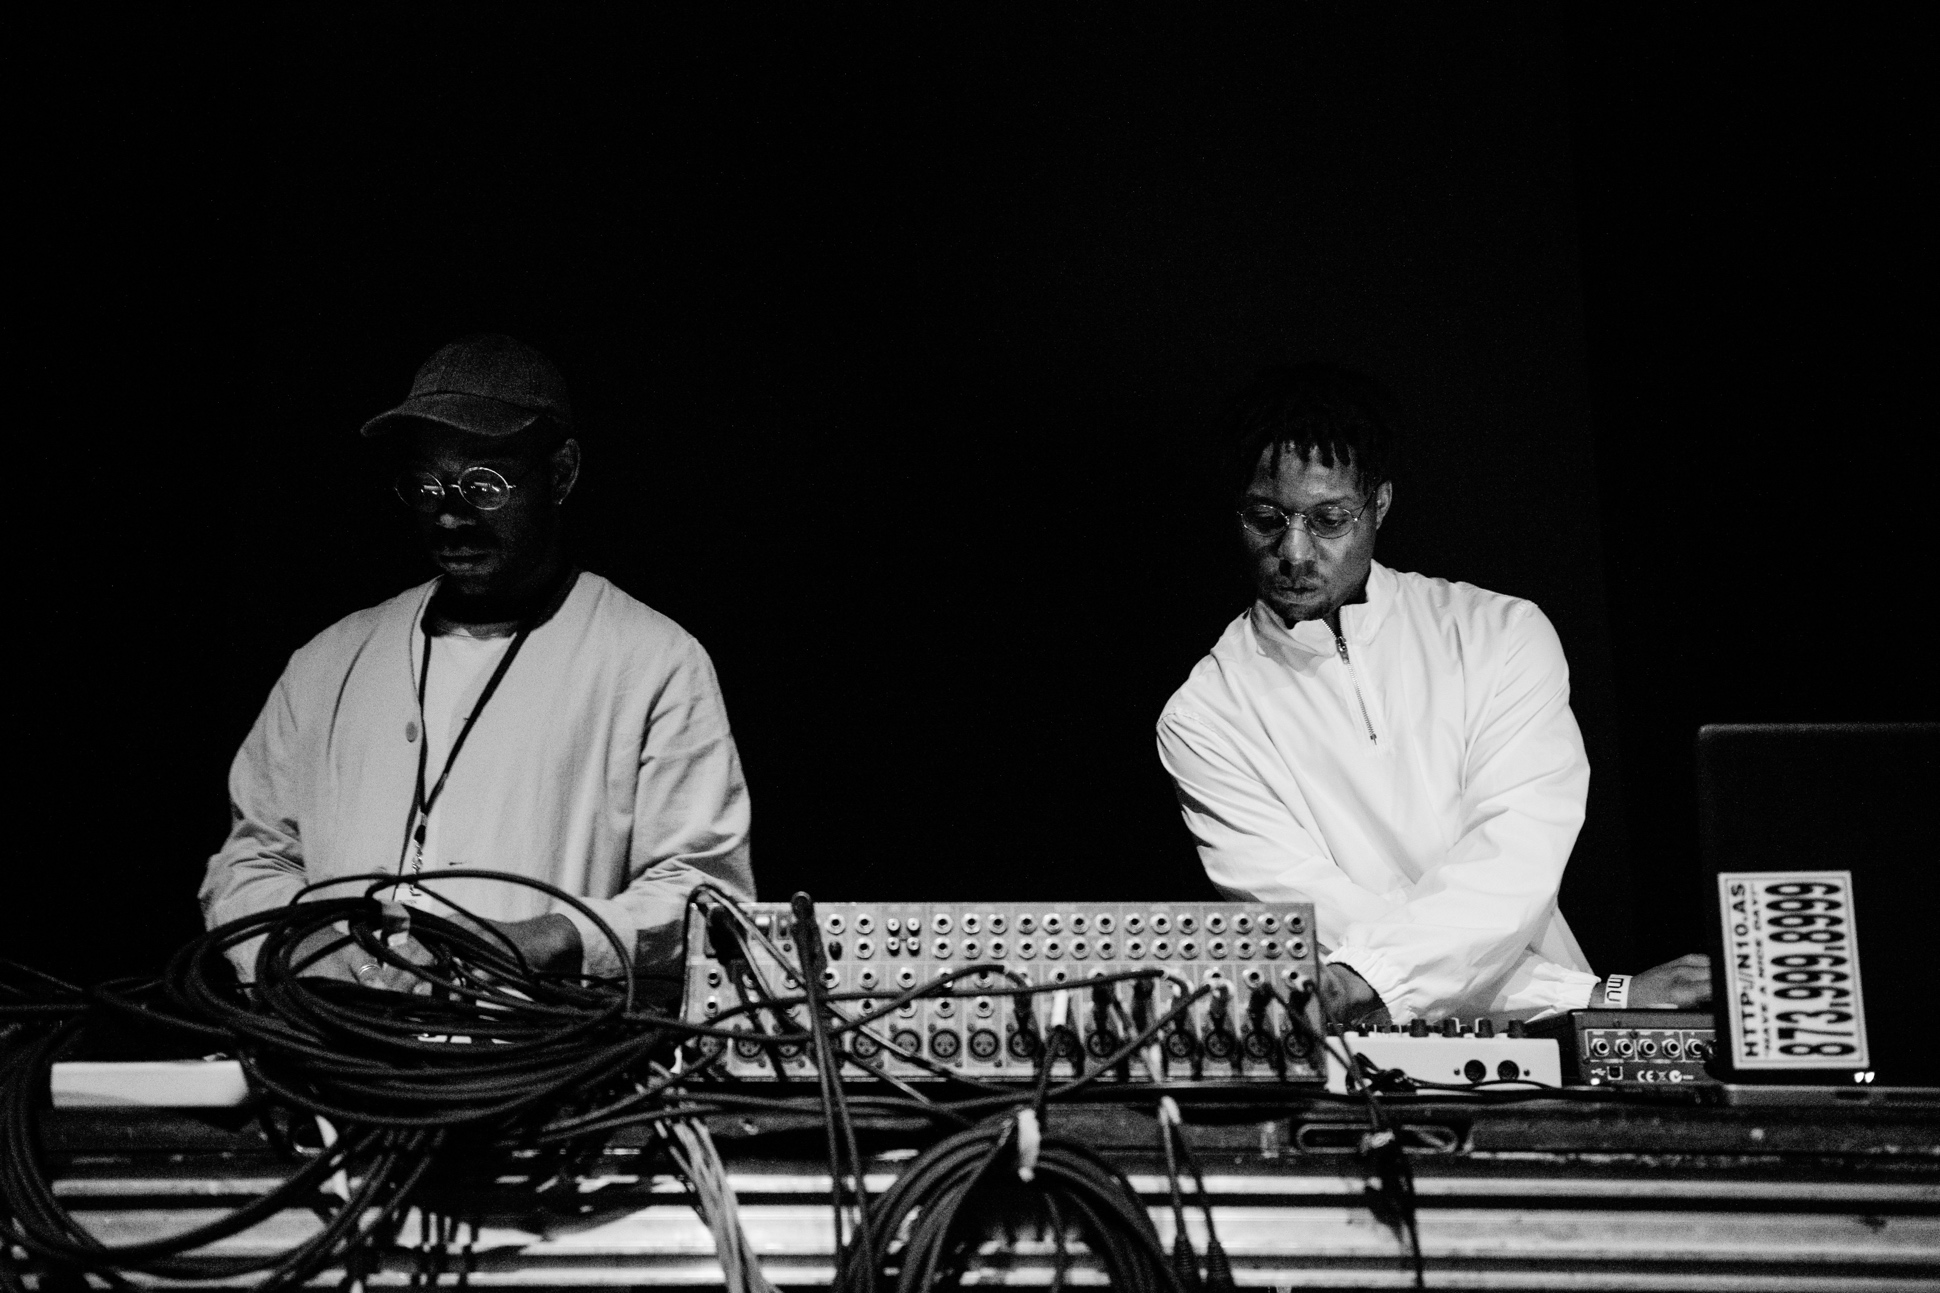 Space Afrika are the Manchester duo breathing new life into dub techno